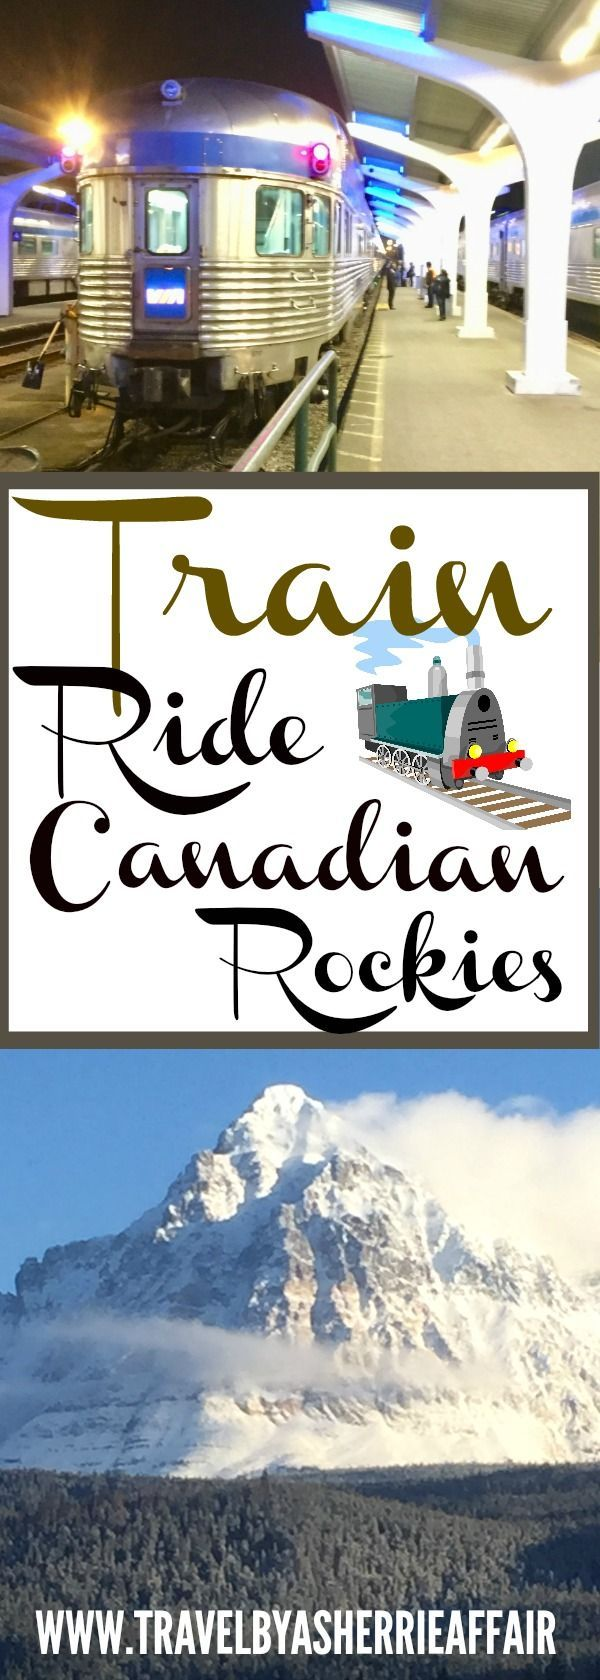 Travel by train through the beautiful winter wonderland of the Canadian Rockies by train! This was part of our Mother-Daughter trip together.   #train #Canadianrockies #Canada #Mountians #trainride #winter #snow #winterwonderland #explore #experience #wintertime #video #photos